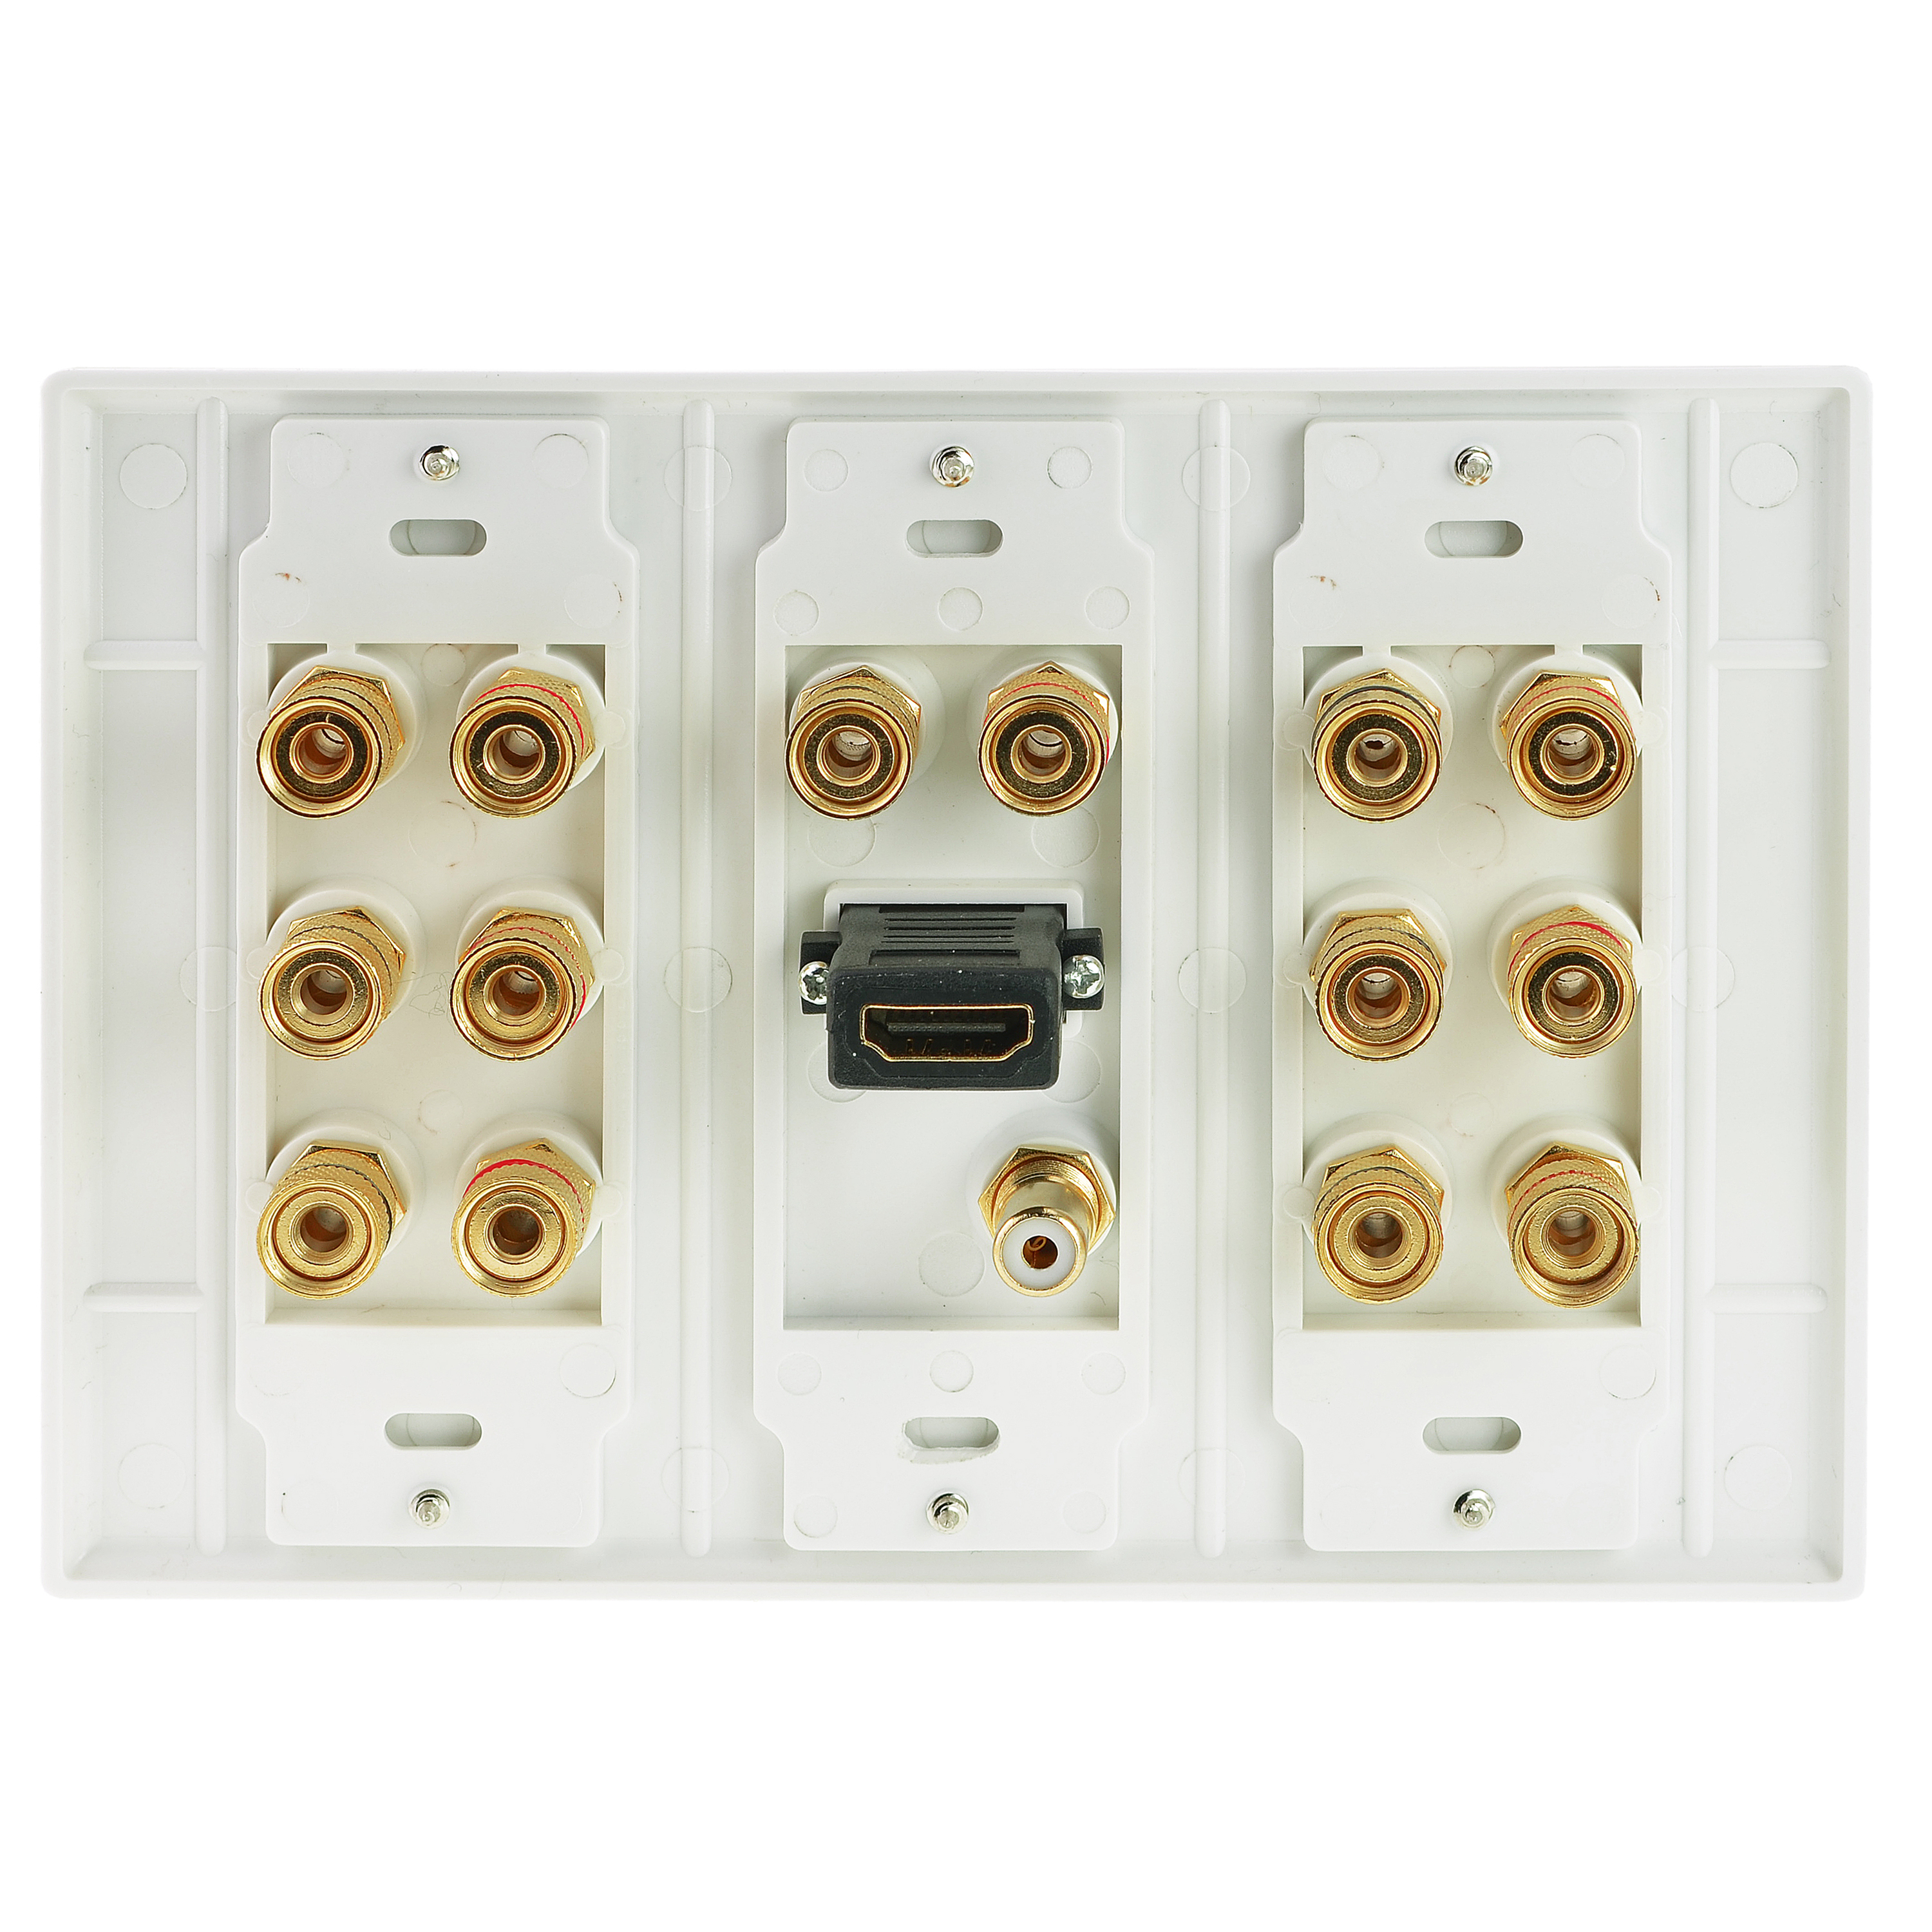 Home Theater Wall Plates shop new wall plate with banana plugs (7 pair), subwoofer (1 port